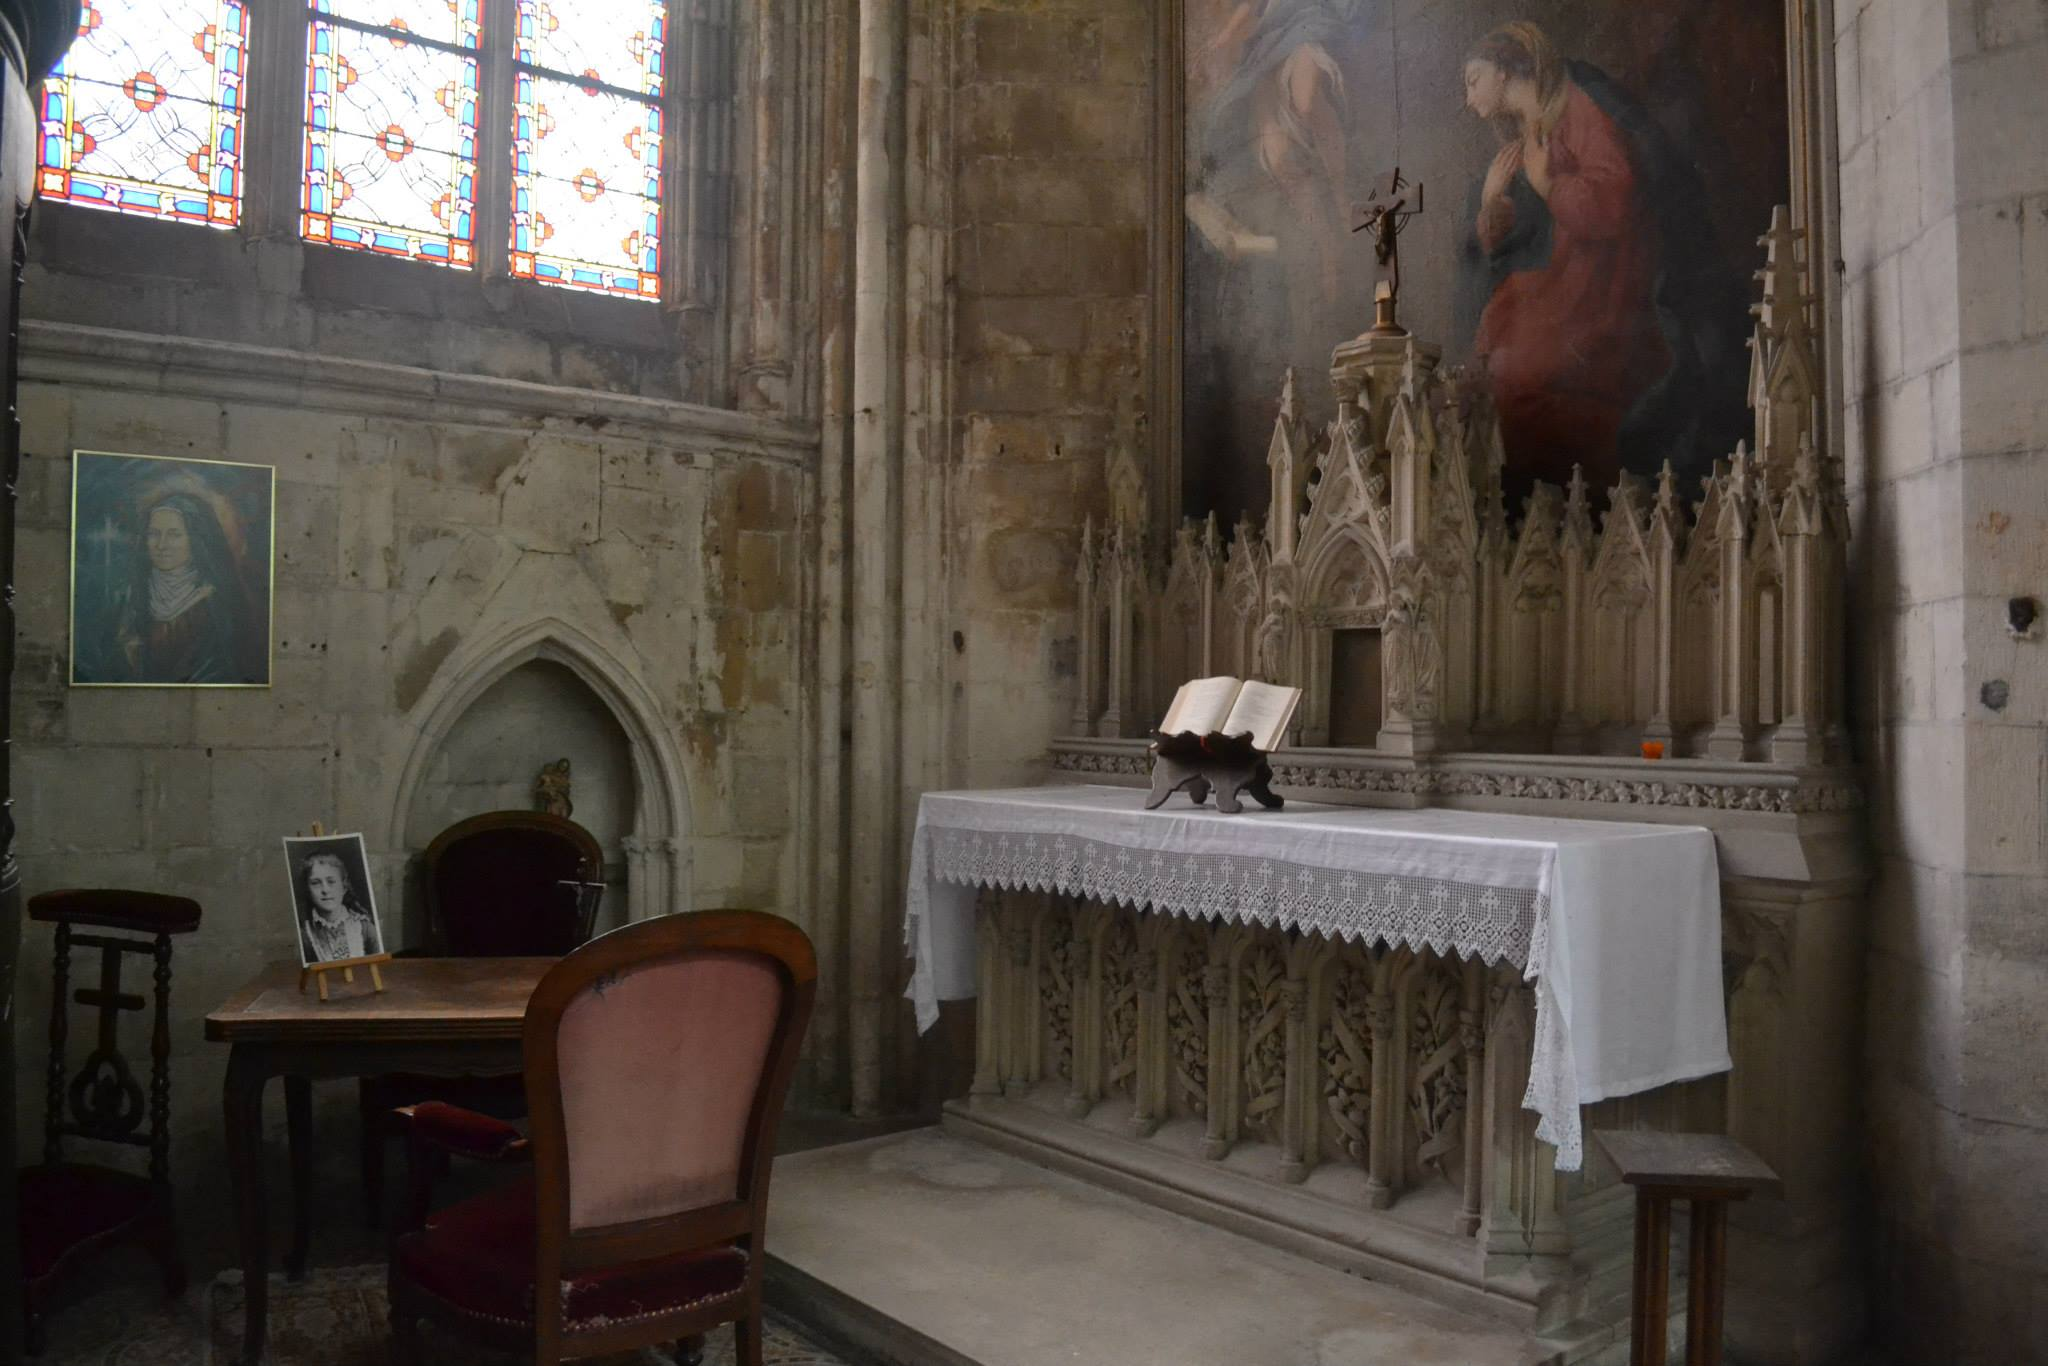 The chapel inside the cathedral, in which Thérèse made her first confession (Photo: WYM)